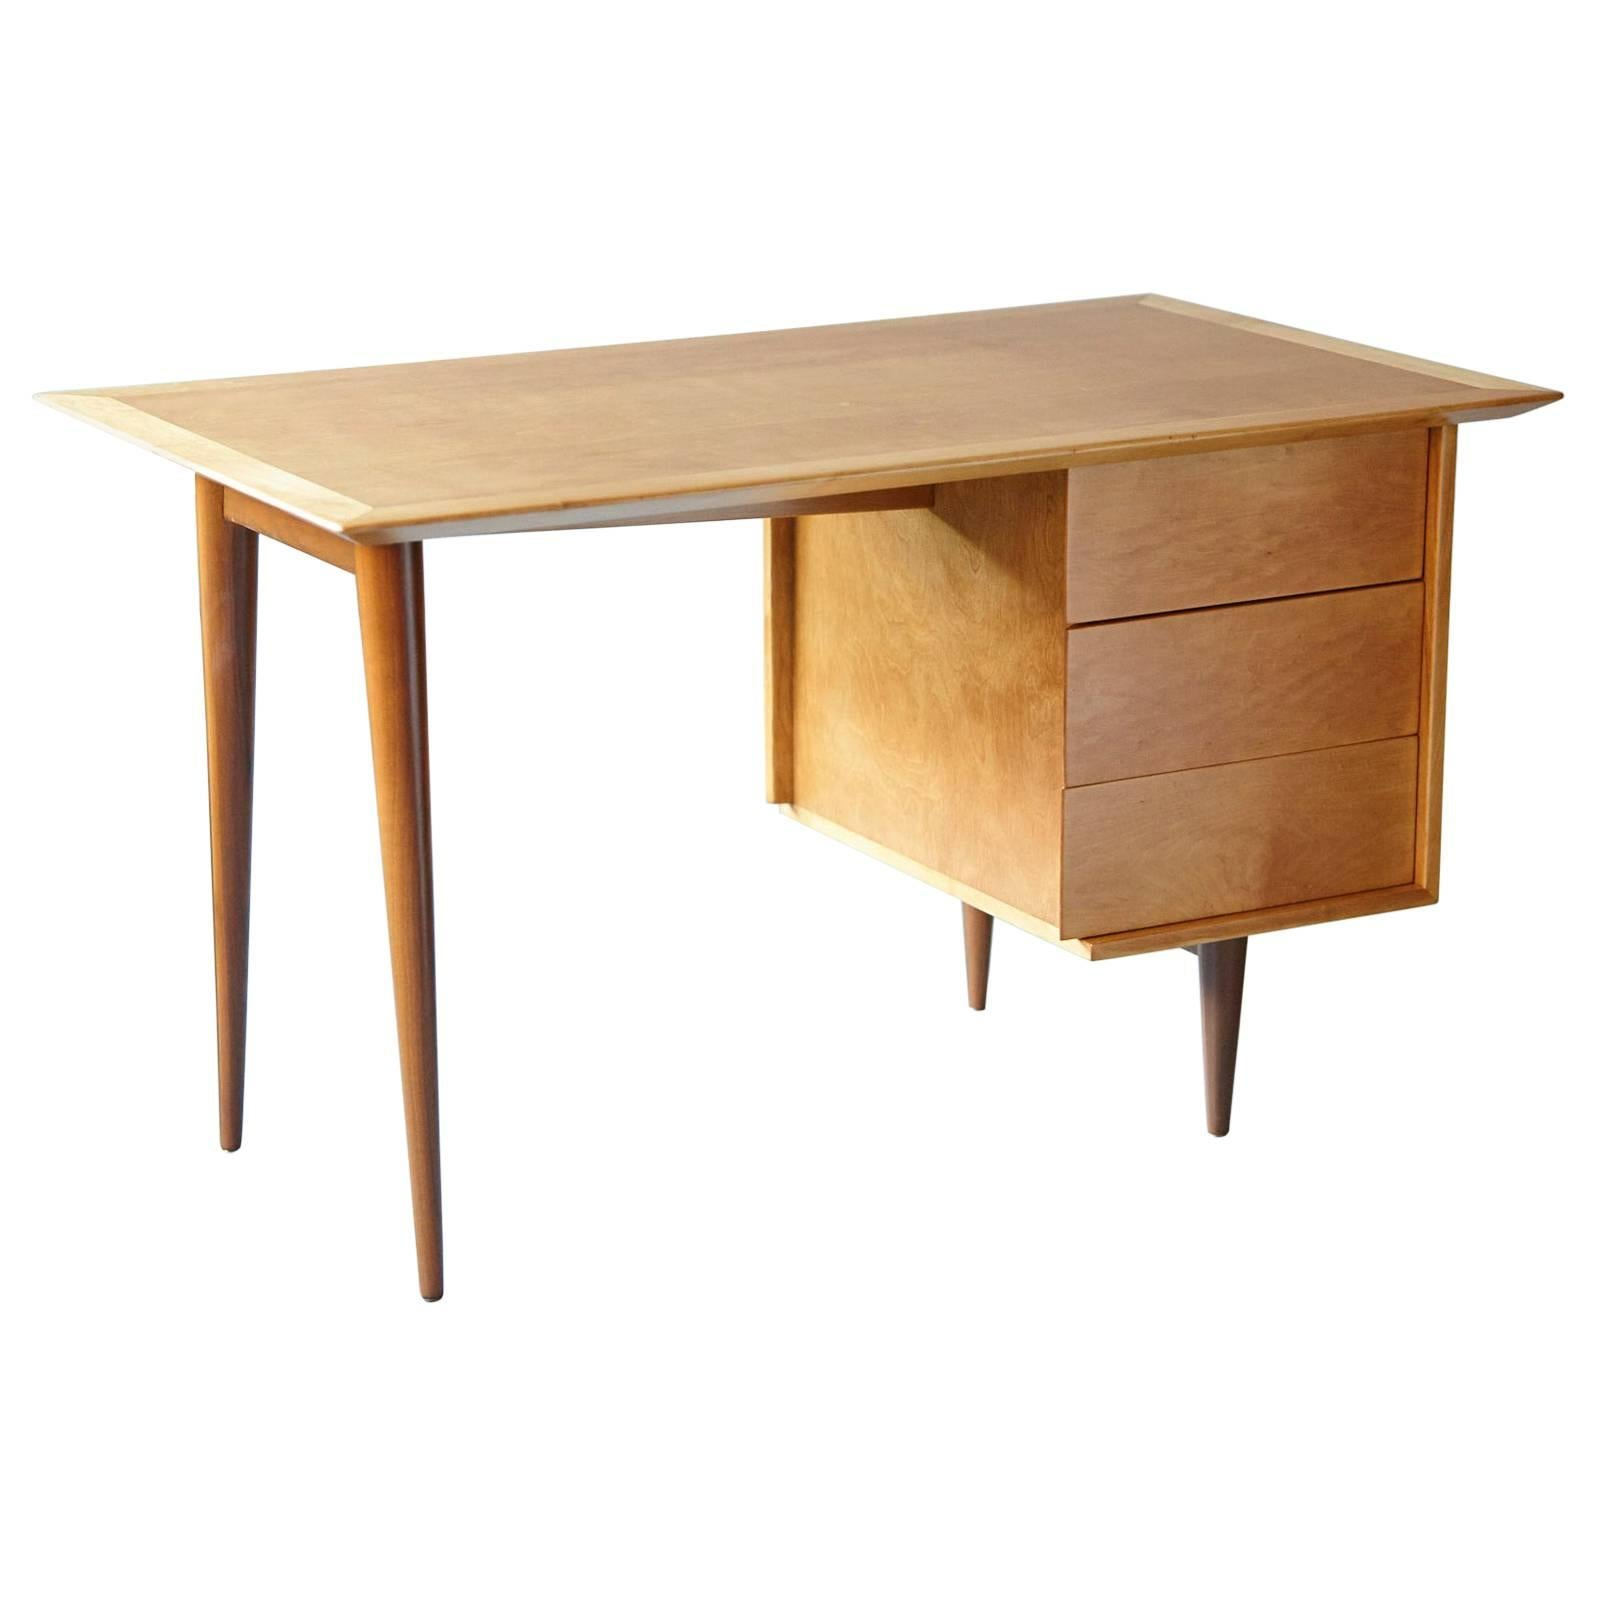 Table Florence Knoll Prix rare early florence knoll maple desk, model 17 completely